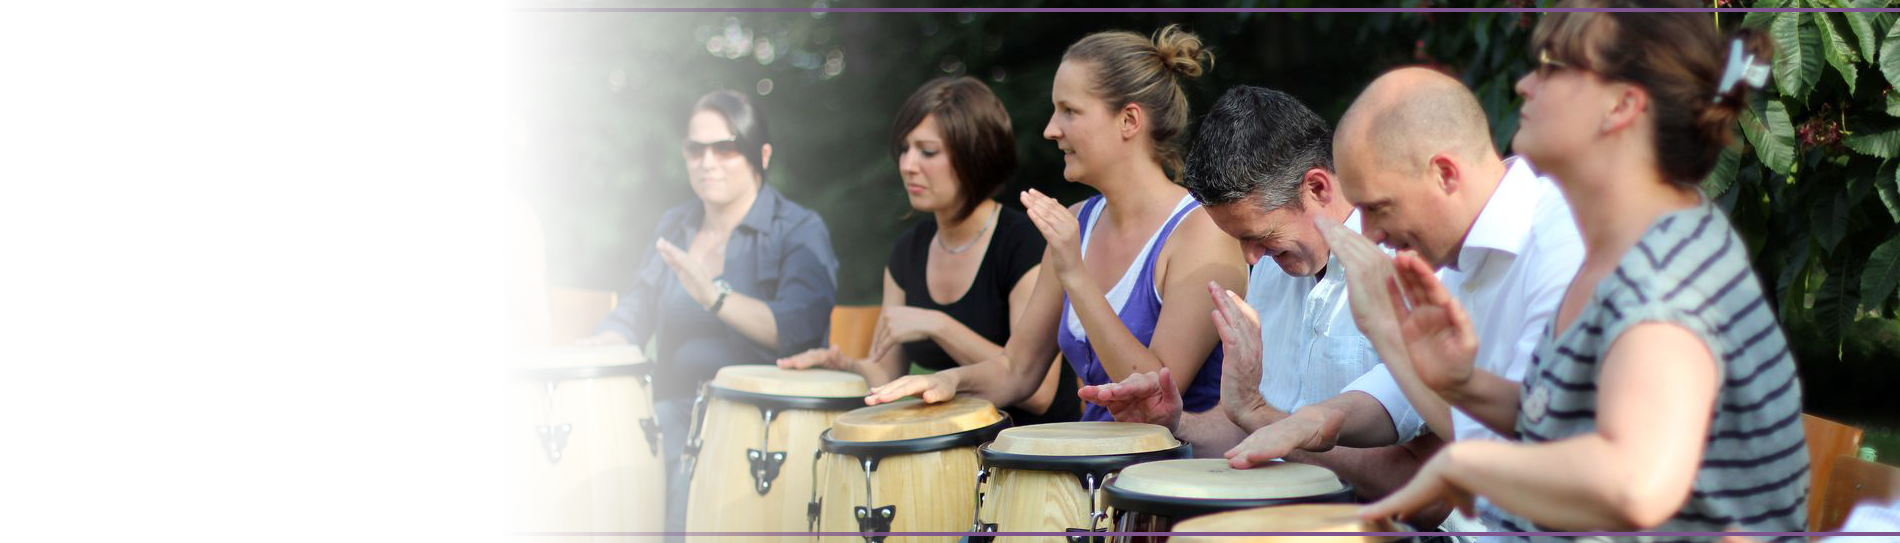 drumcircle-cercle-percussions